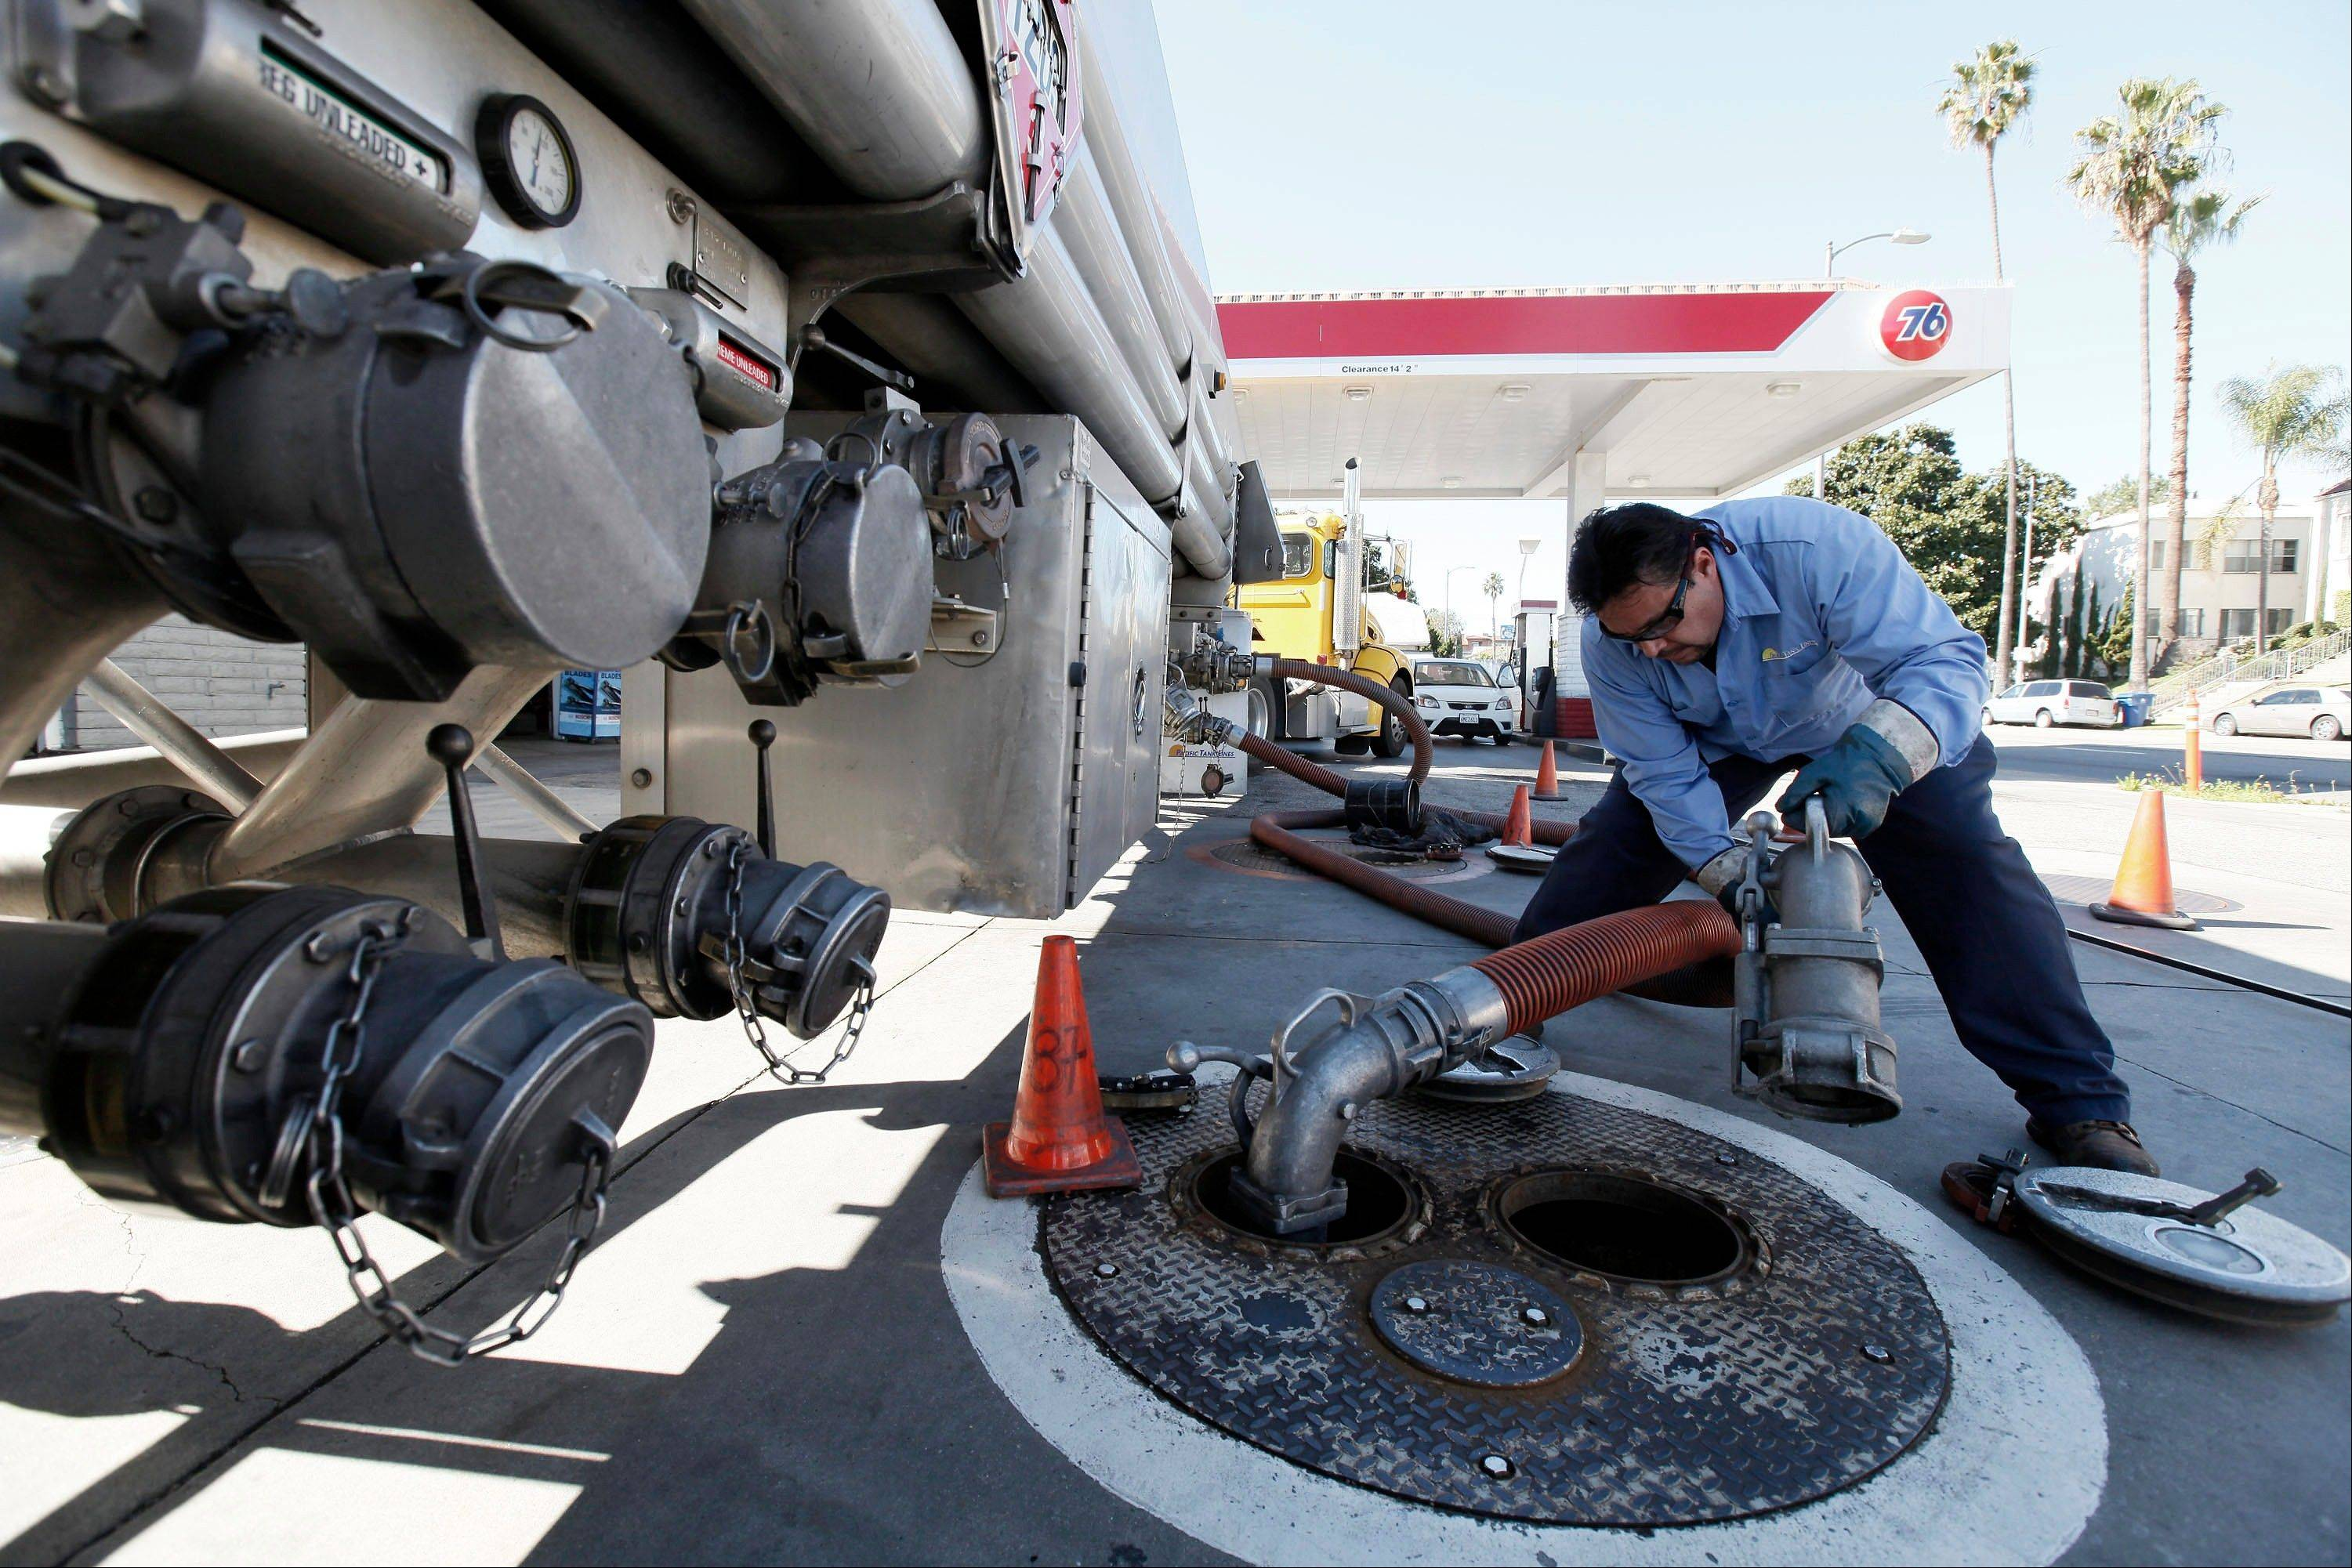 Freddy Lozoga fills an underground tank at a service station Thursday in Los Angeles.